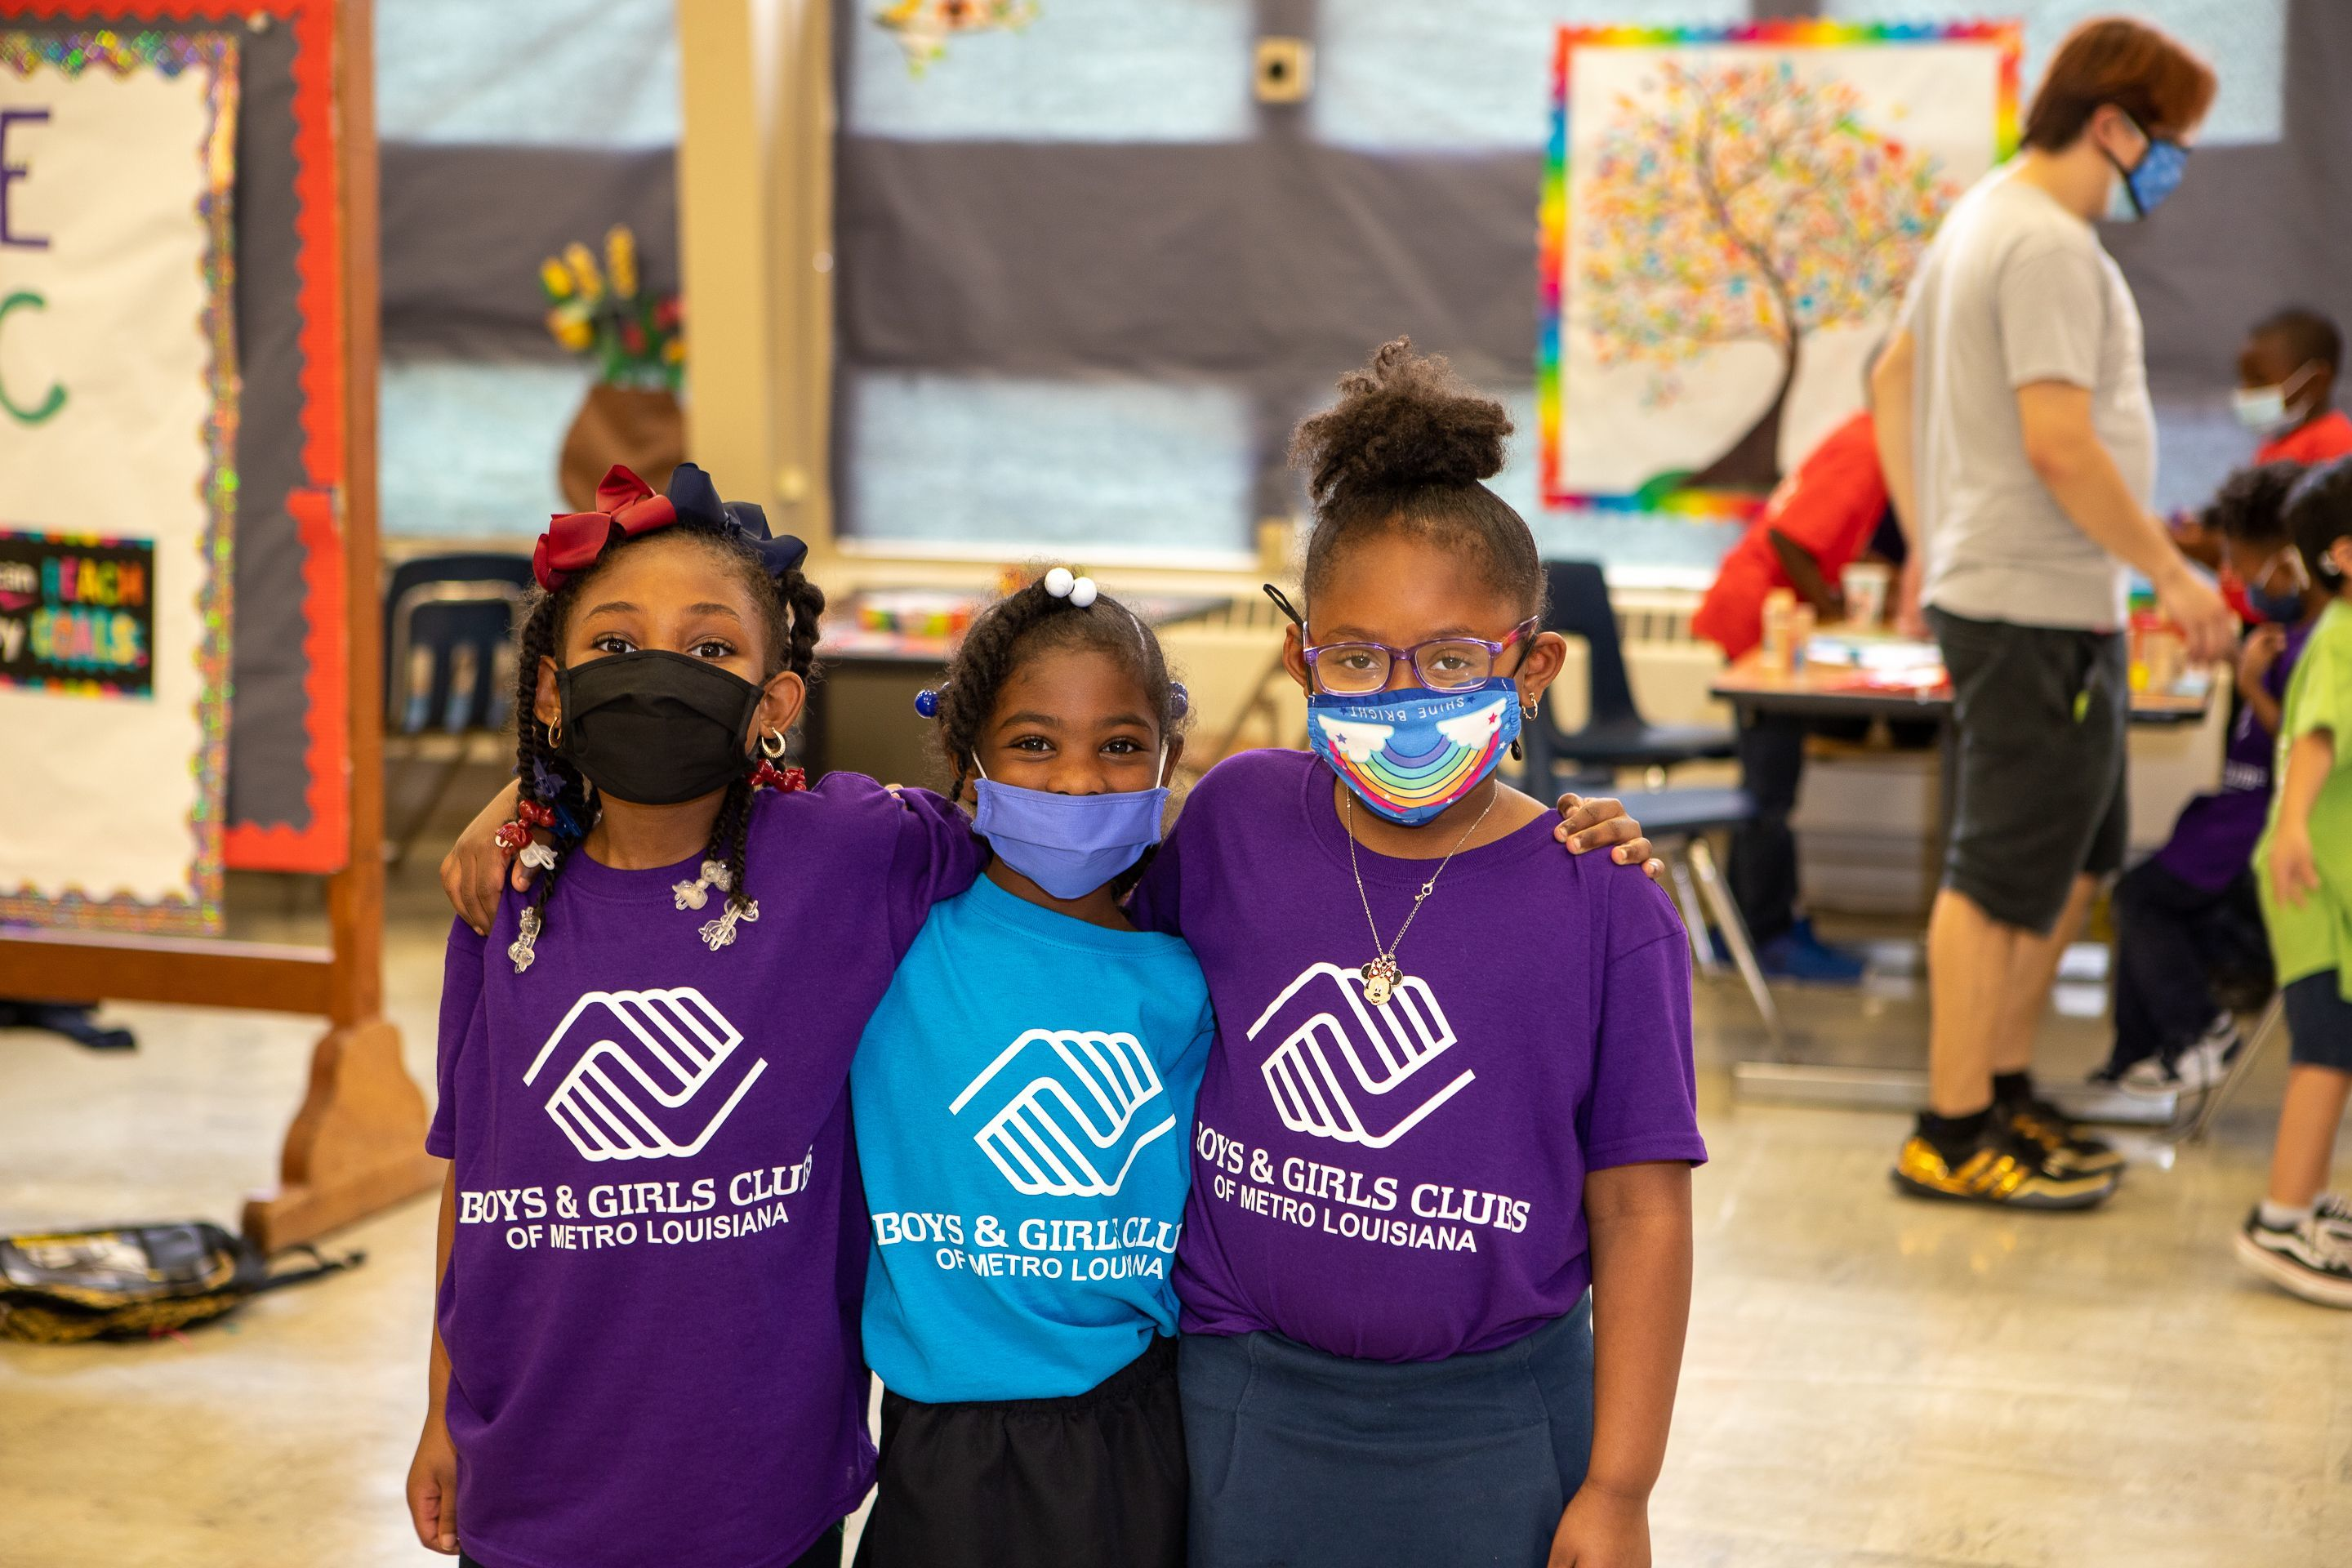 Greater New Orleans, Baton Rouge Boys & Girls Clubs merge into regional chapter to increase reach